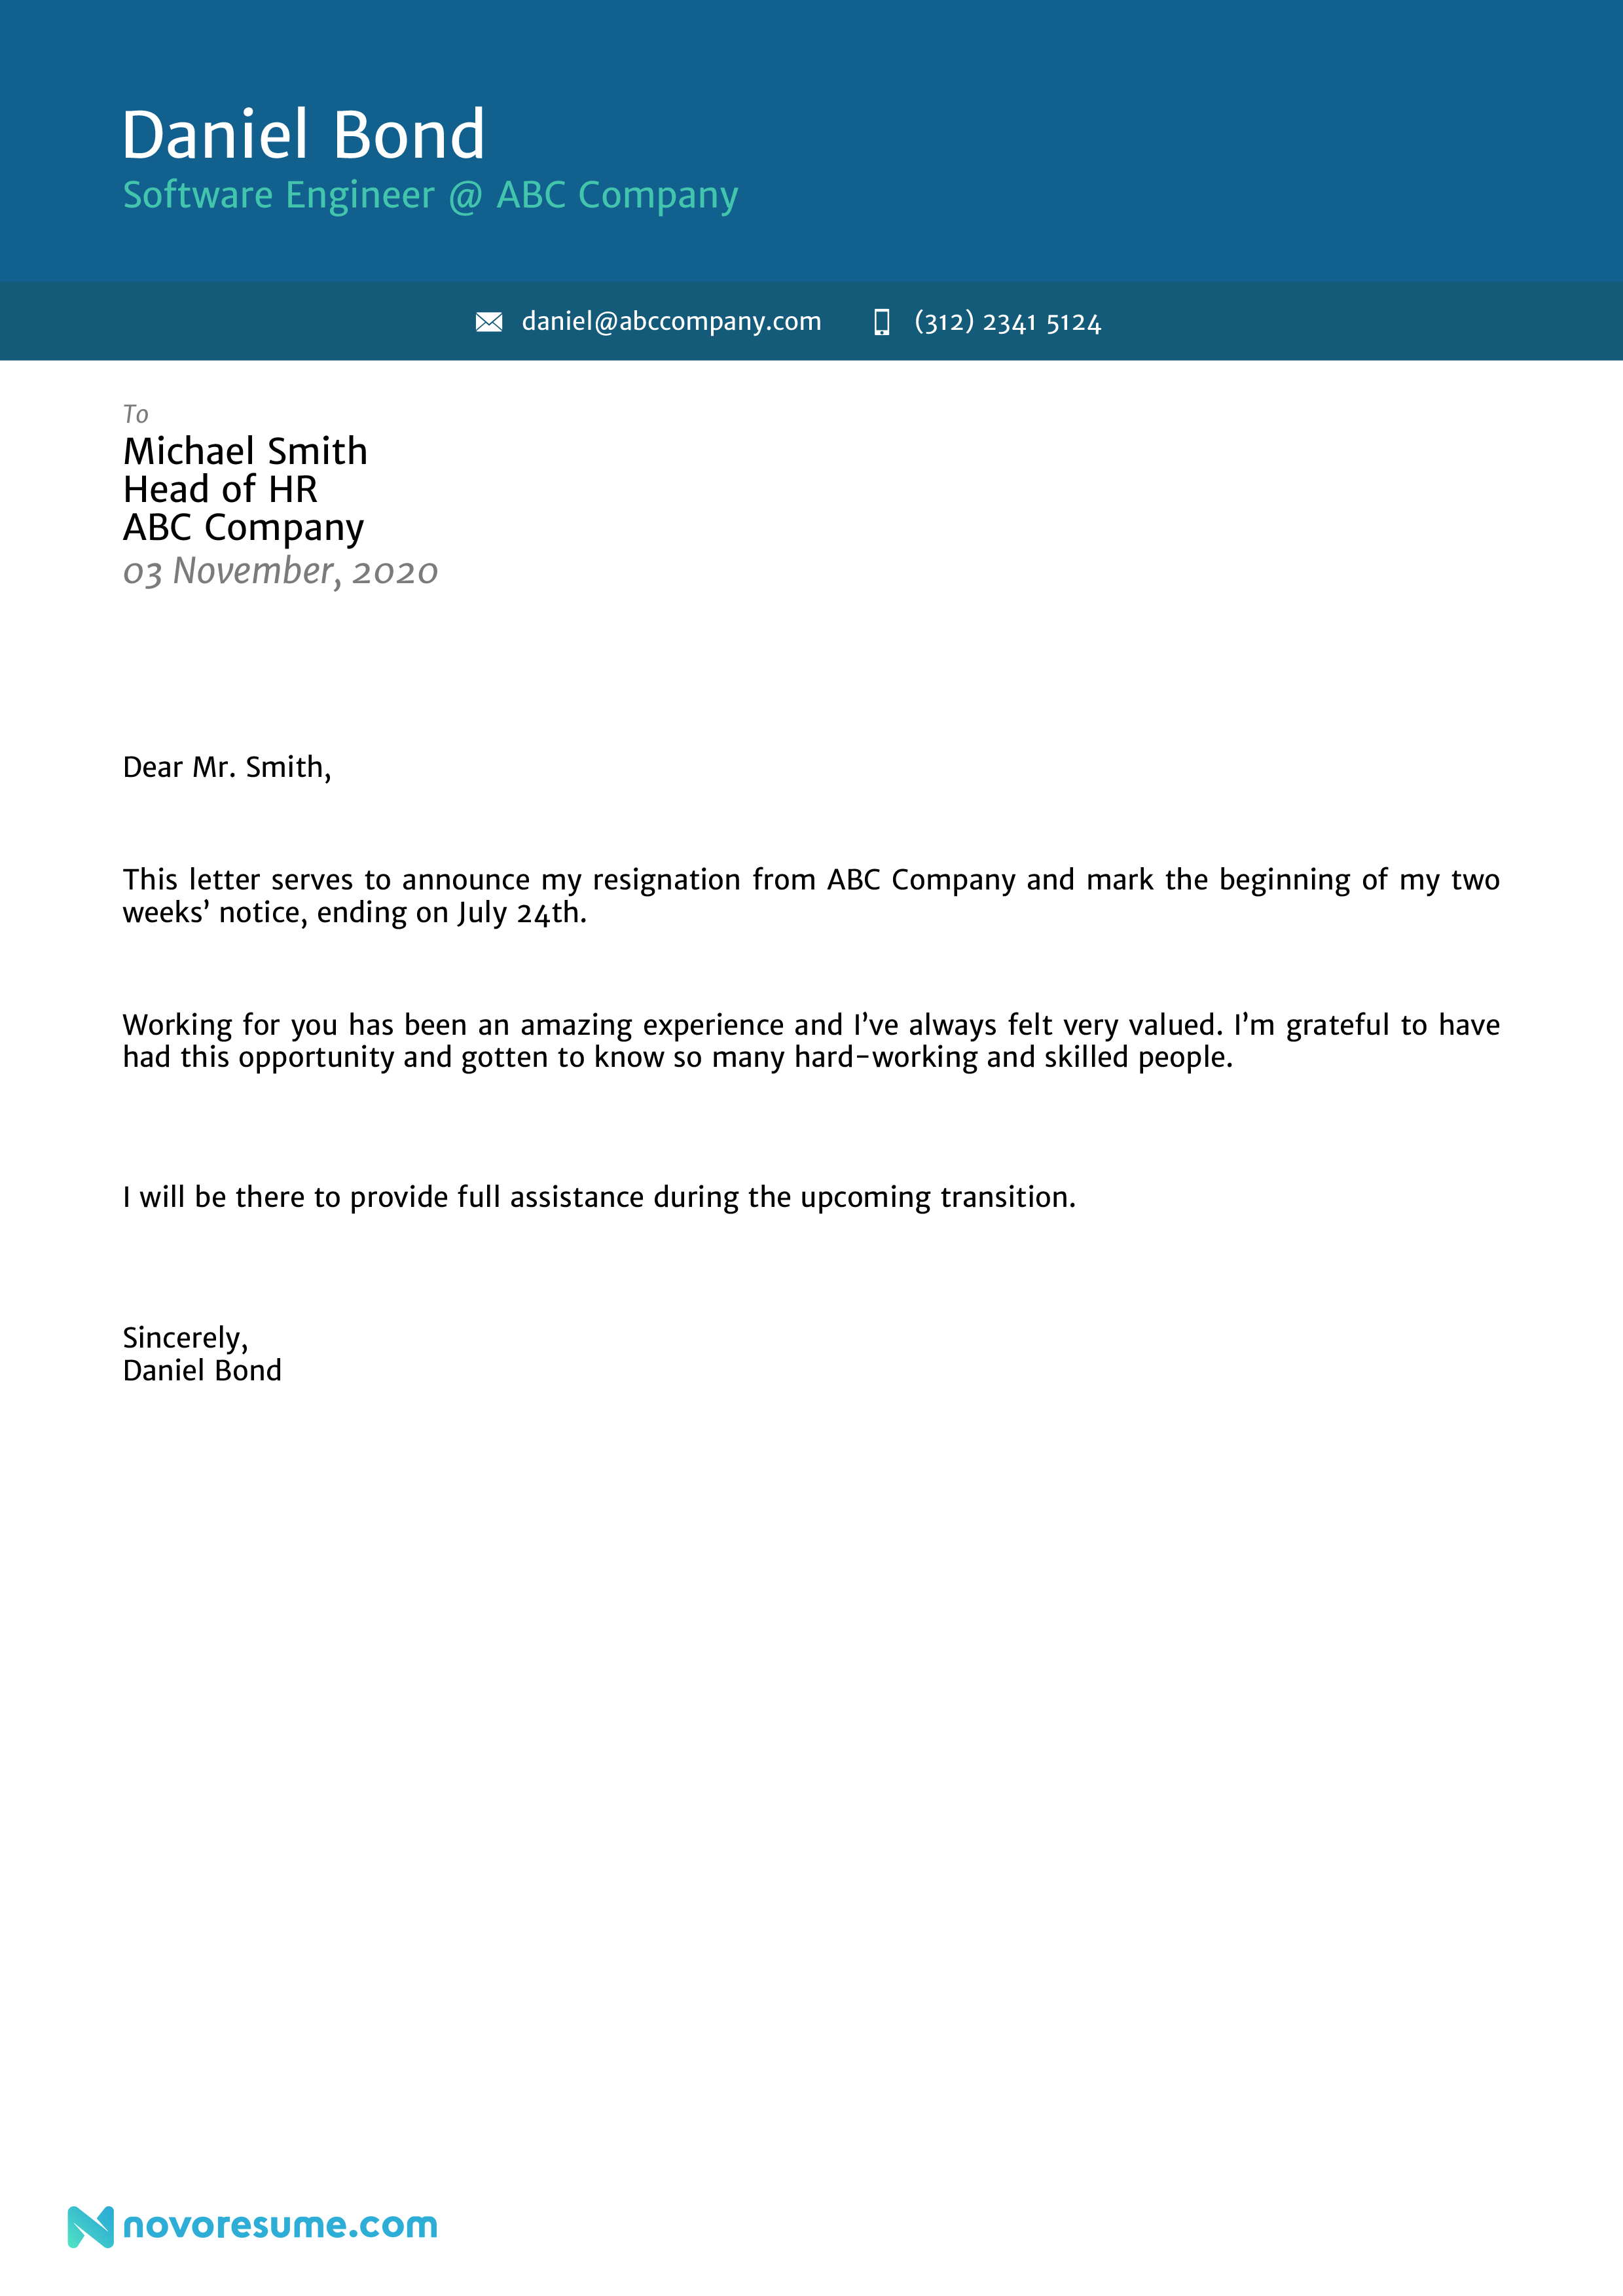 Resignation Letter Sample for a Mid Level Professional